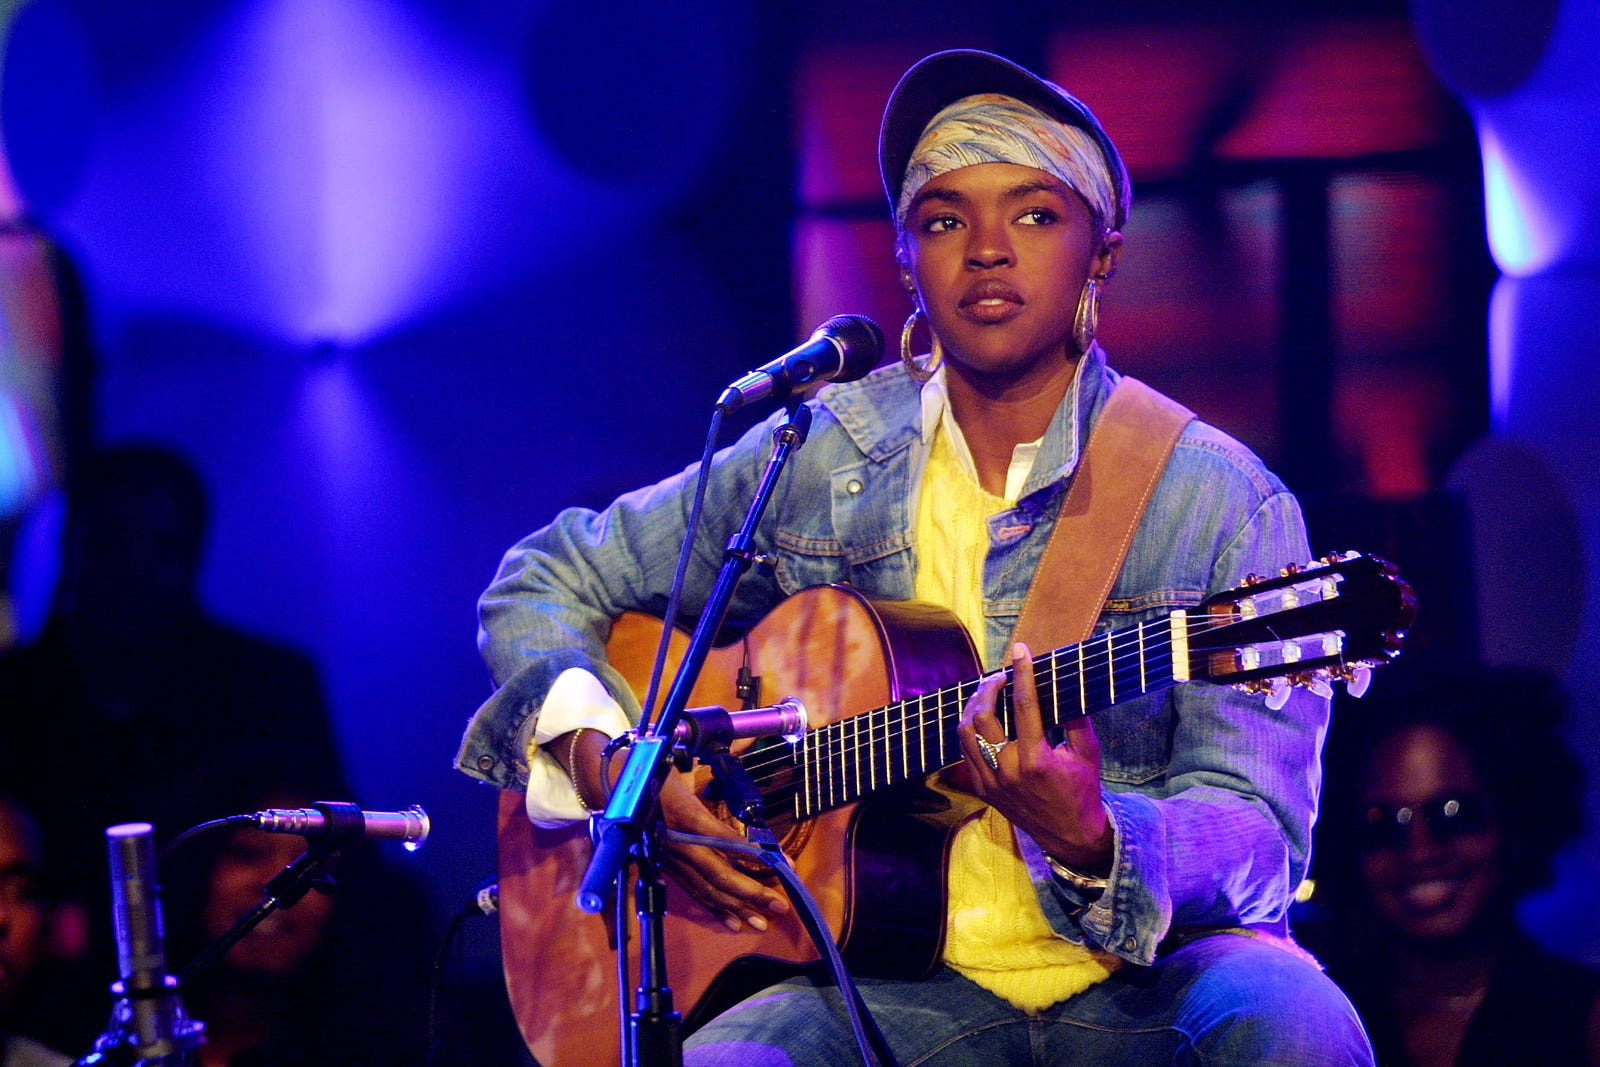 Lauryn Hill performing on 'MTV Unplugged' at the MTV Studios in New York City, 7/21/01.